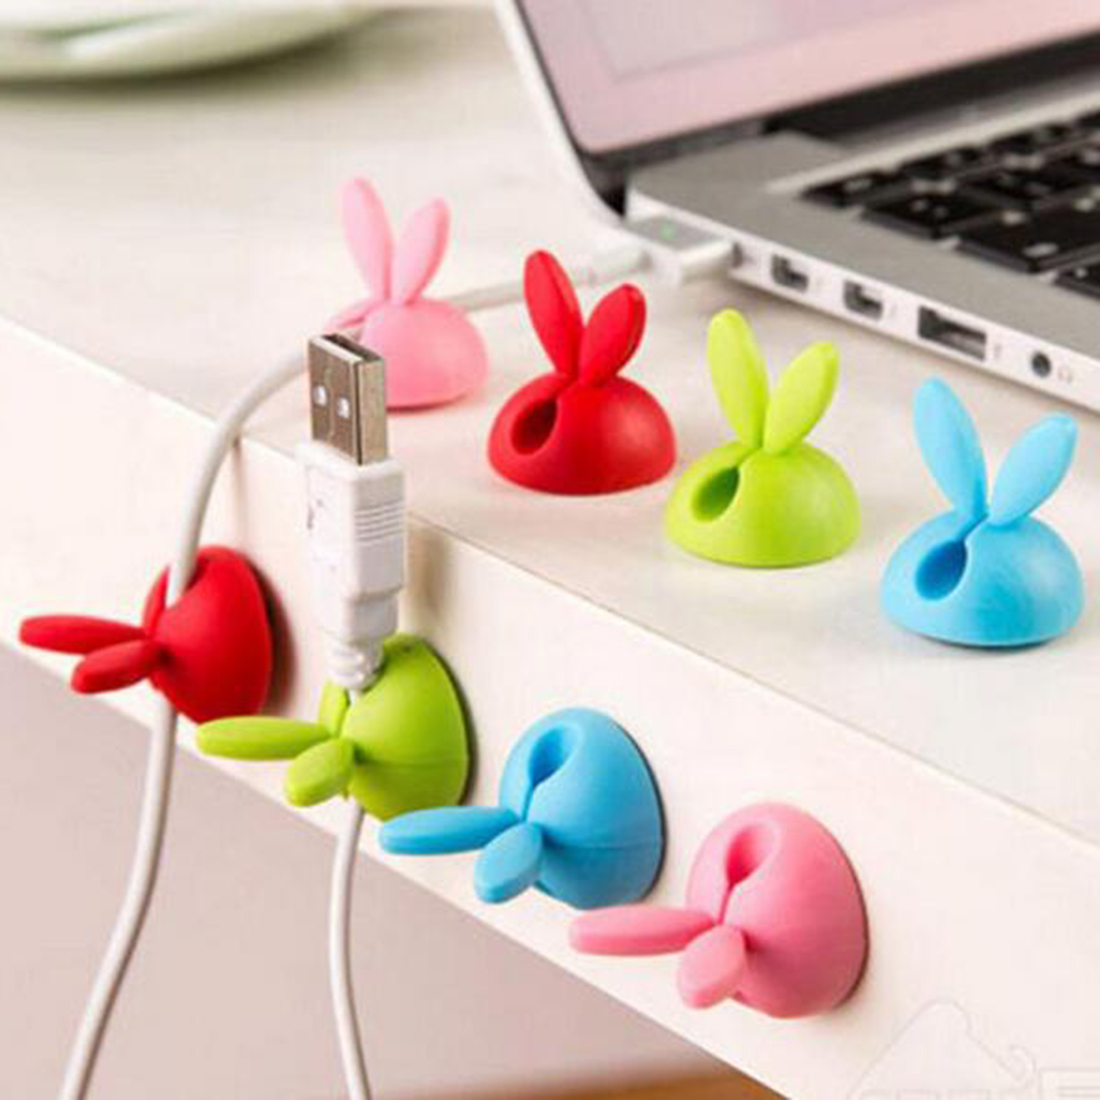 4pcs Cute Rabbit Ears Cable Winder Collation Holder Bunny Charger Wire Cord Organizer Clip Tidy Desk Earphone Fixer Bobbin Clamp Consumer Electronics